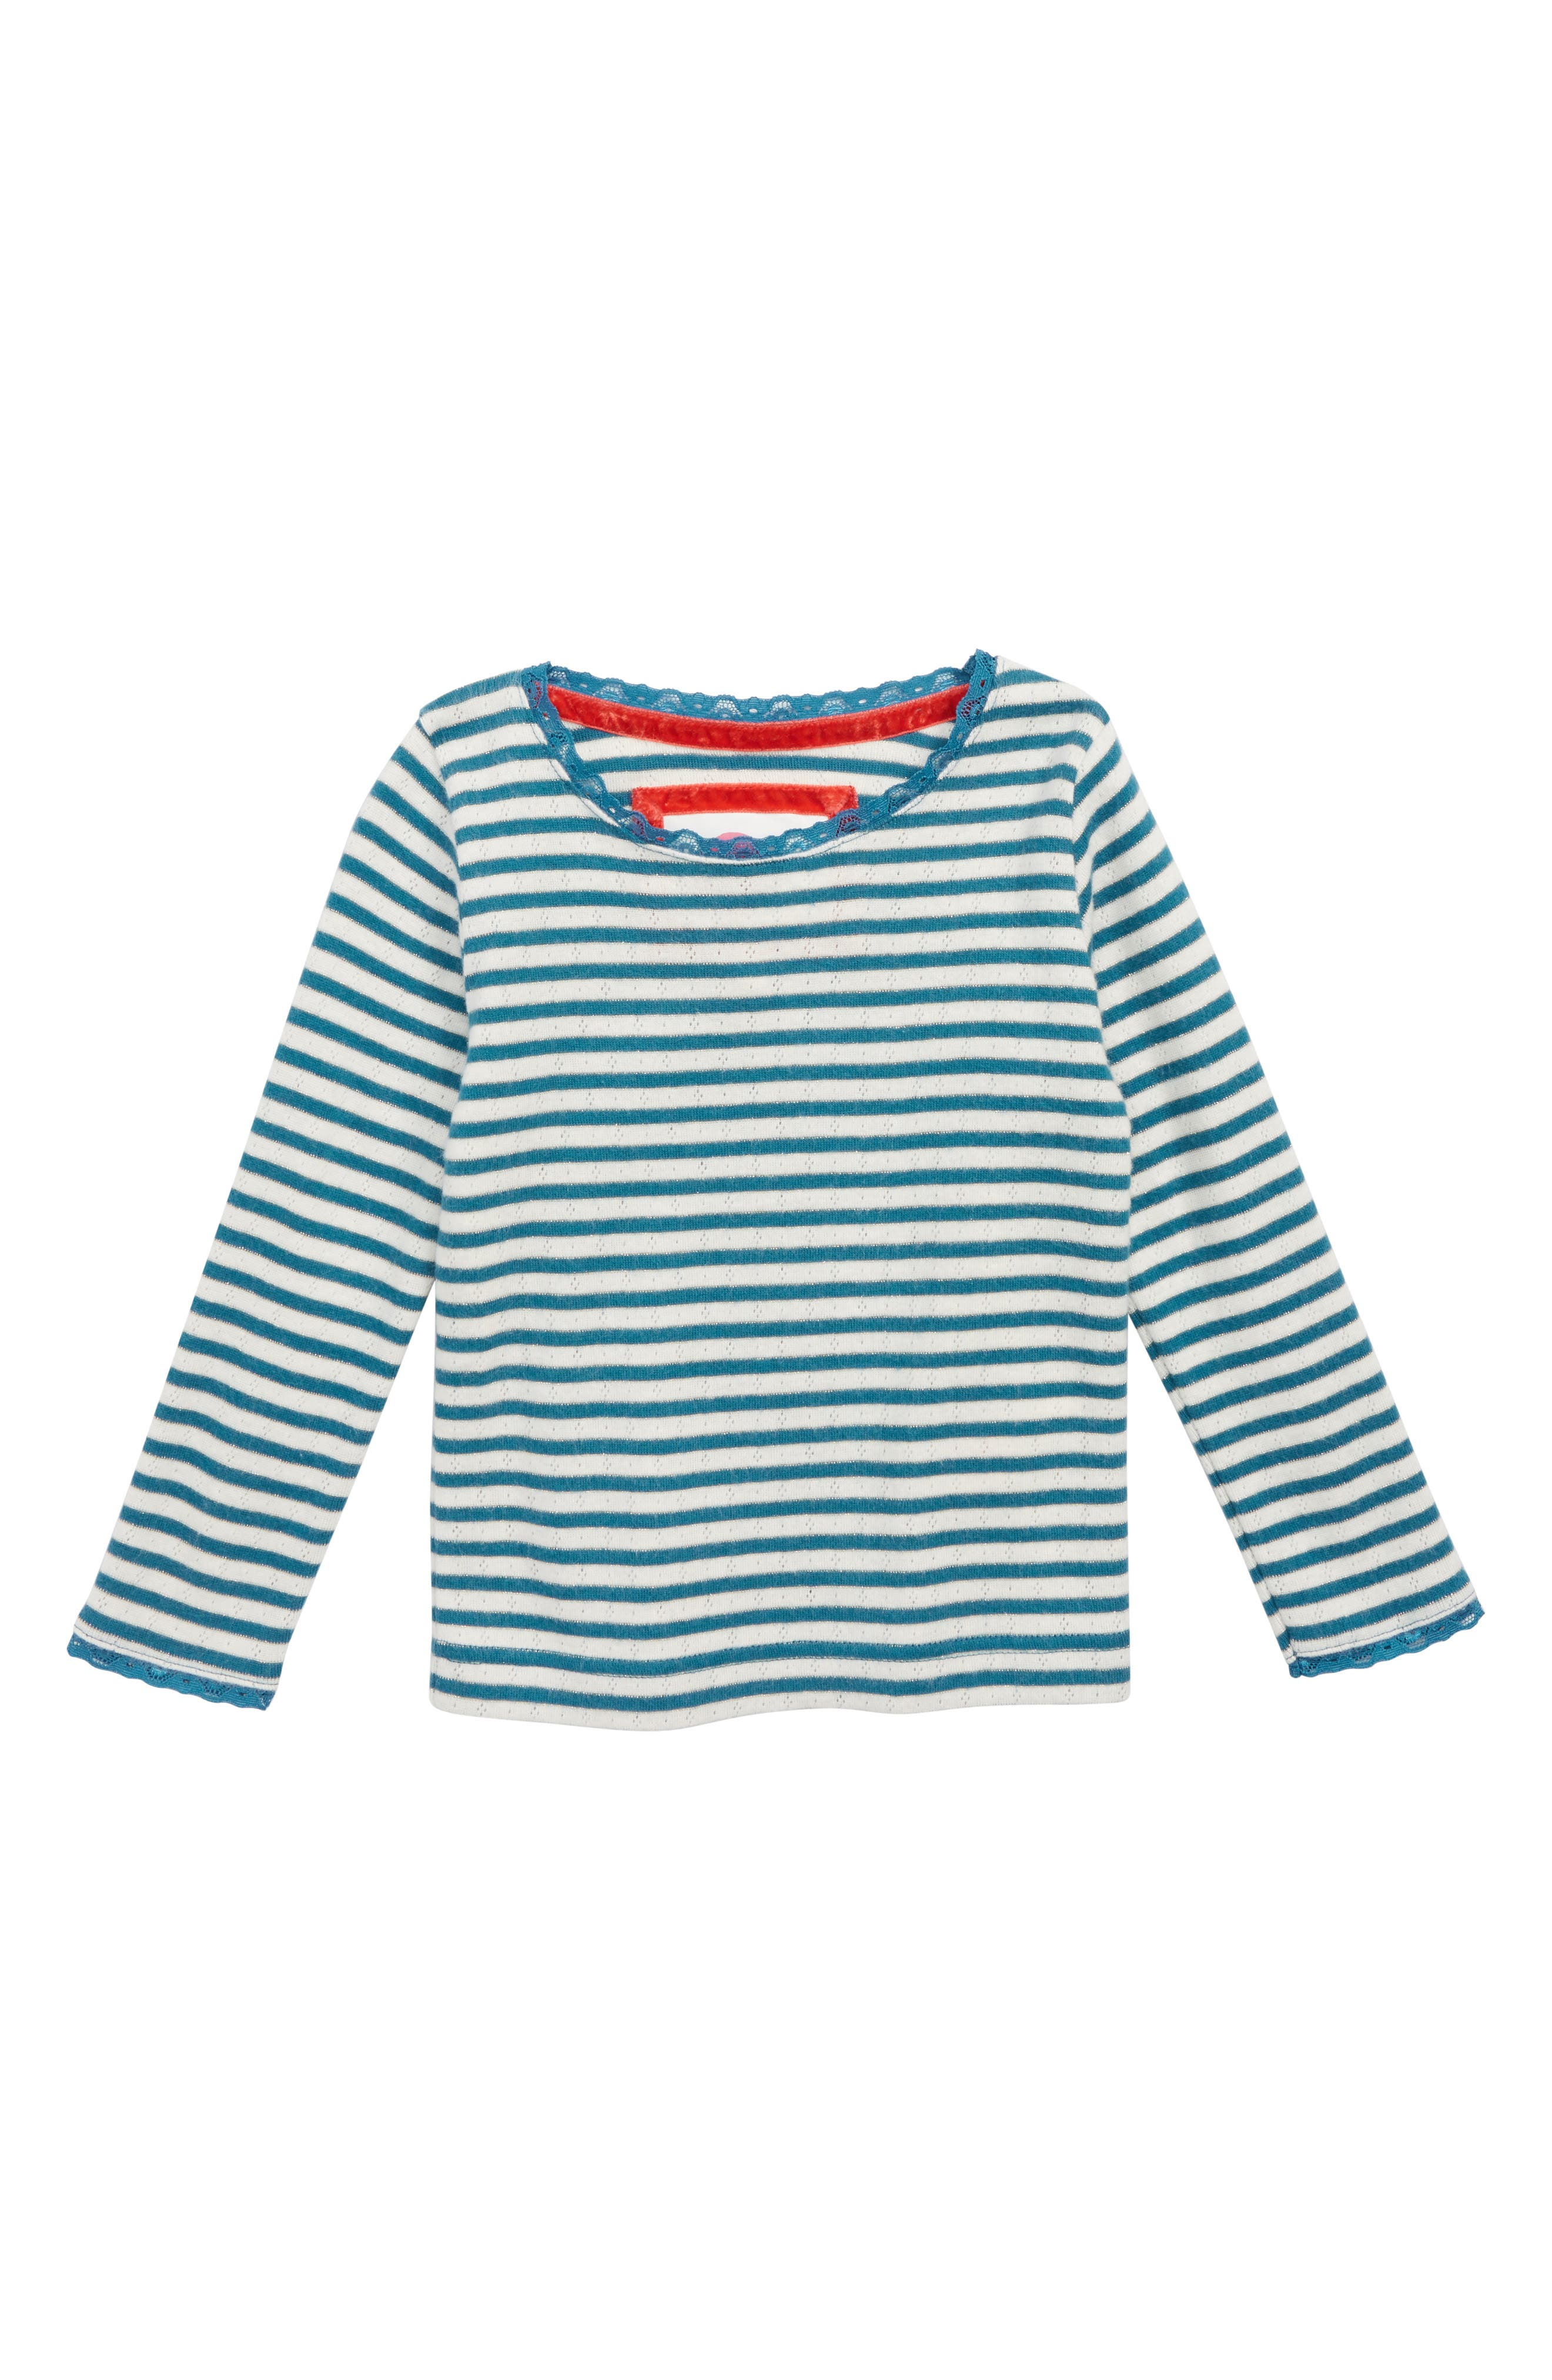 Sparkly Pointelle Tee,                             Main thumbnail 1, color,                             GREY MARL/ BLUE